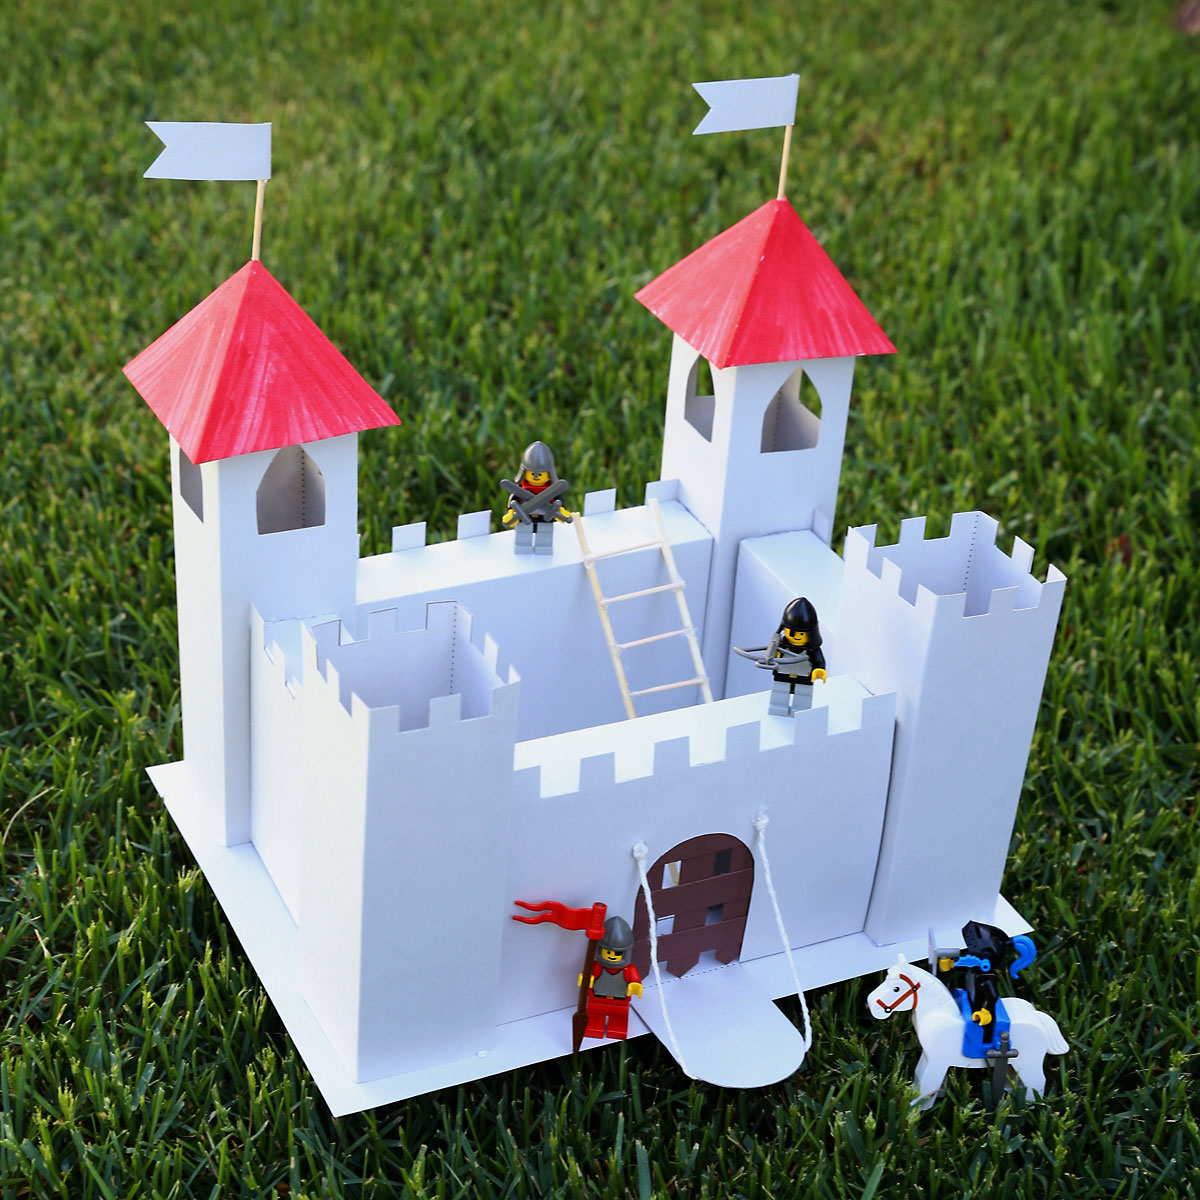 How to make a paper or cardboard castle